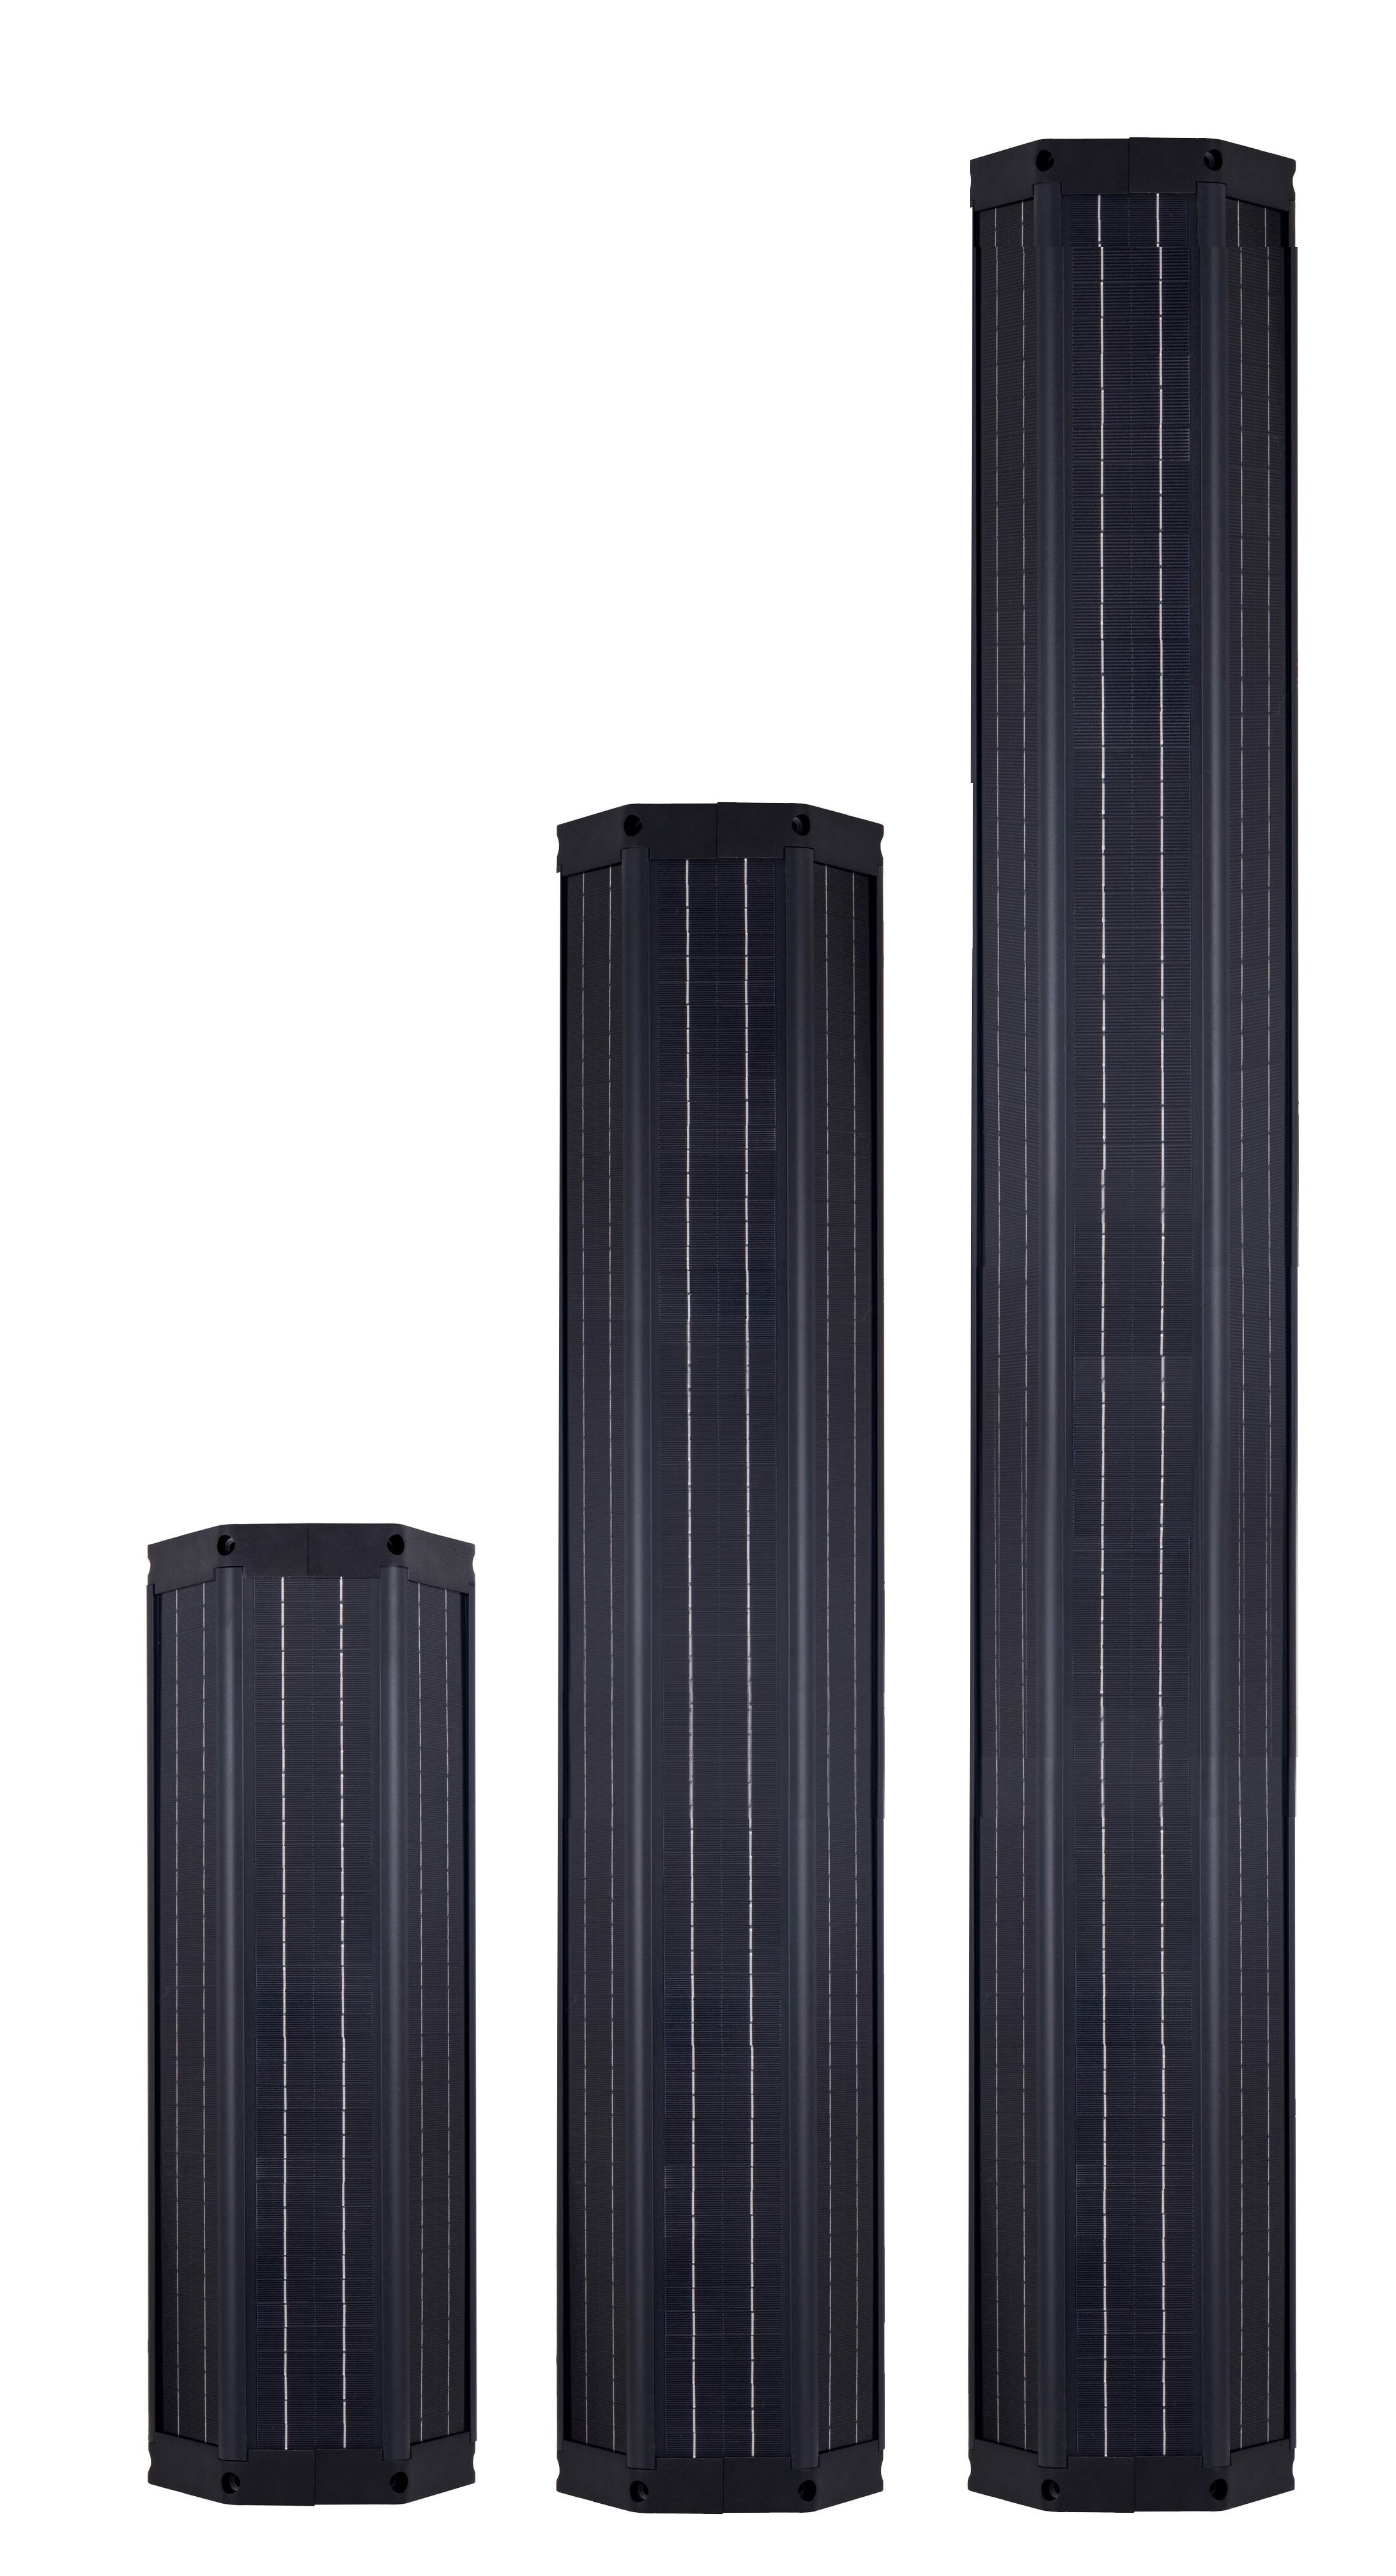 Cylinder Solar Module | Cylindrical Solar Panels | Cylindrical Solar Modules | solar Module | solar Panel | Solar Parking Lot Lighting | Solar warehouse Parking lot lighting | Solar LED Light for Residential and Commercial | Solar Airport Parking lot lighting.